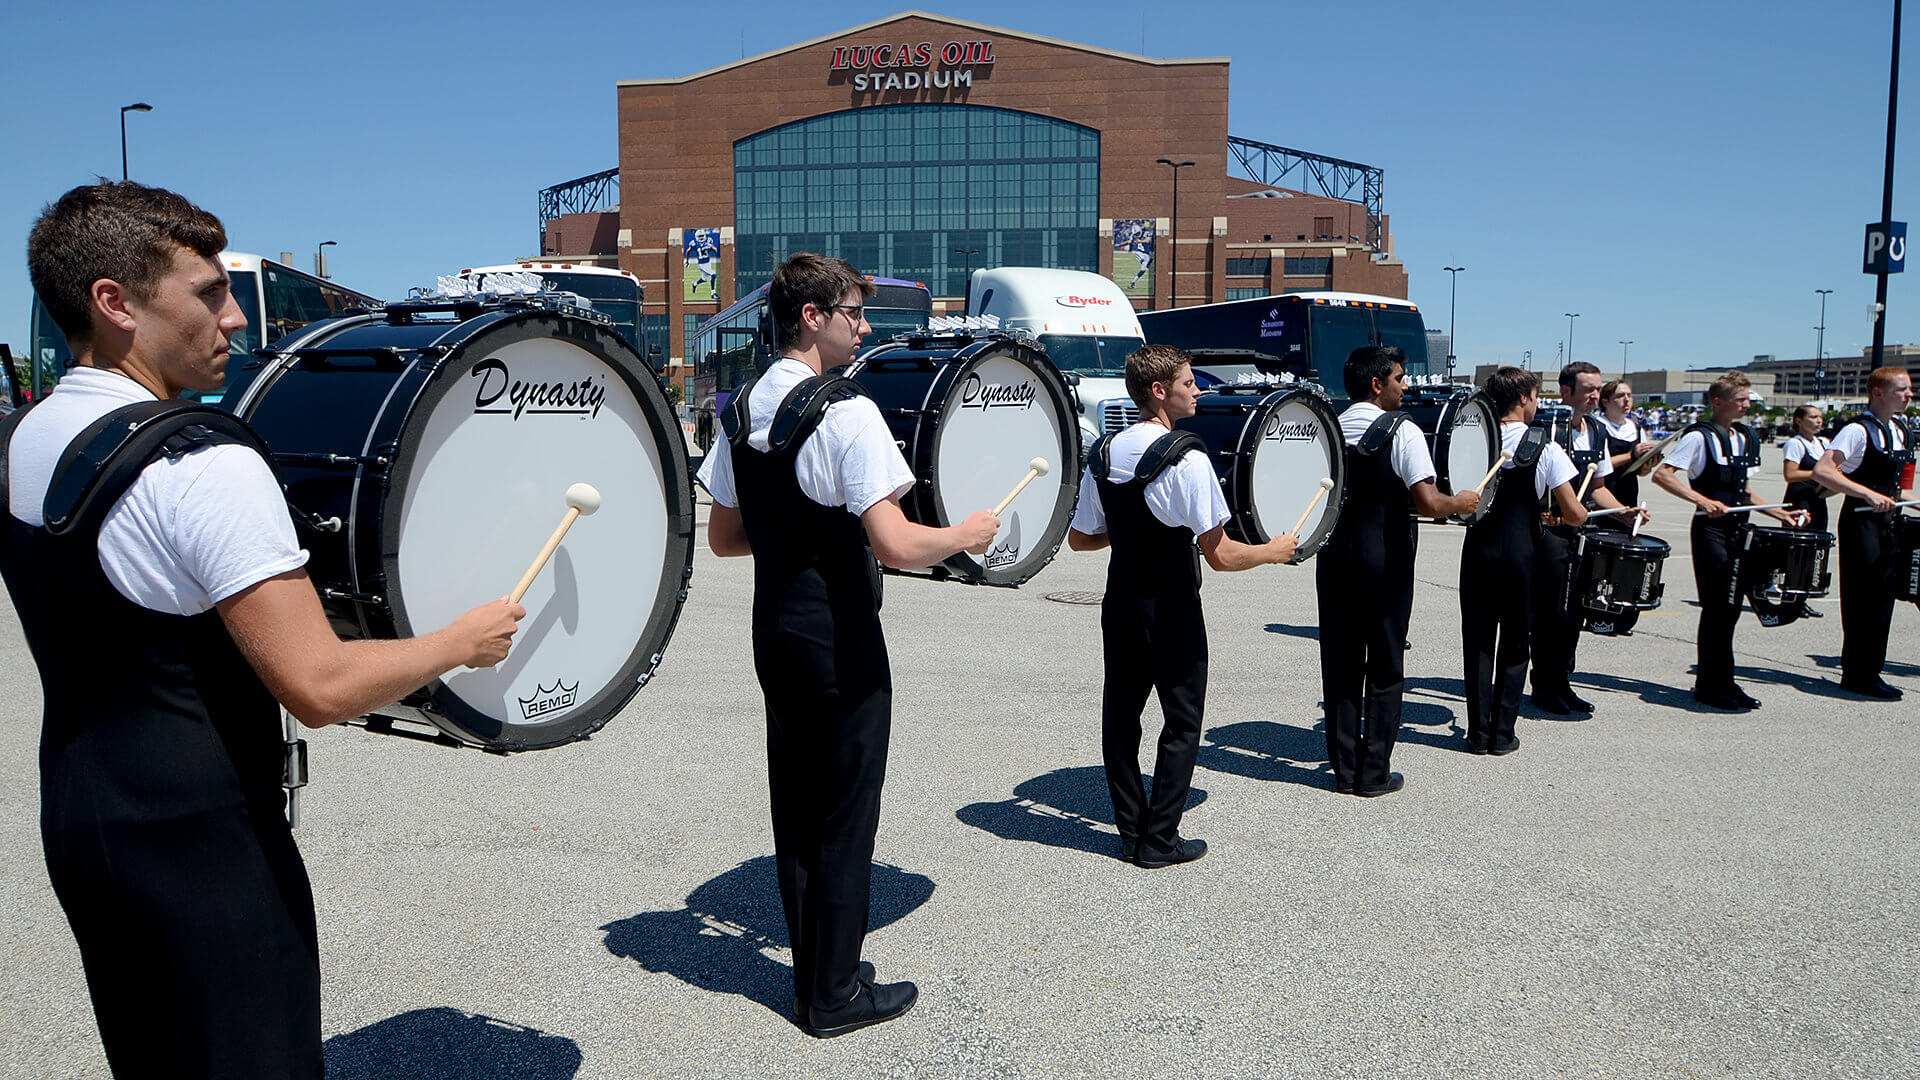 Earasers Musicians Earplugs to present DCI World Championship Prelims